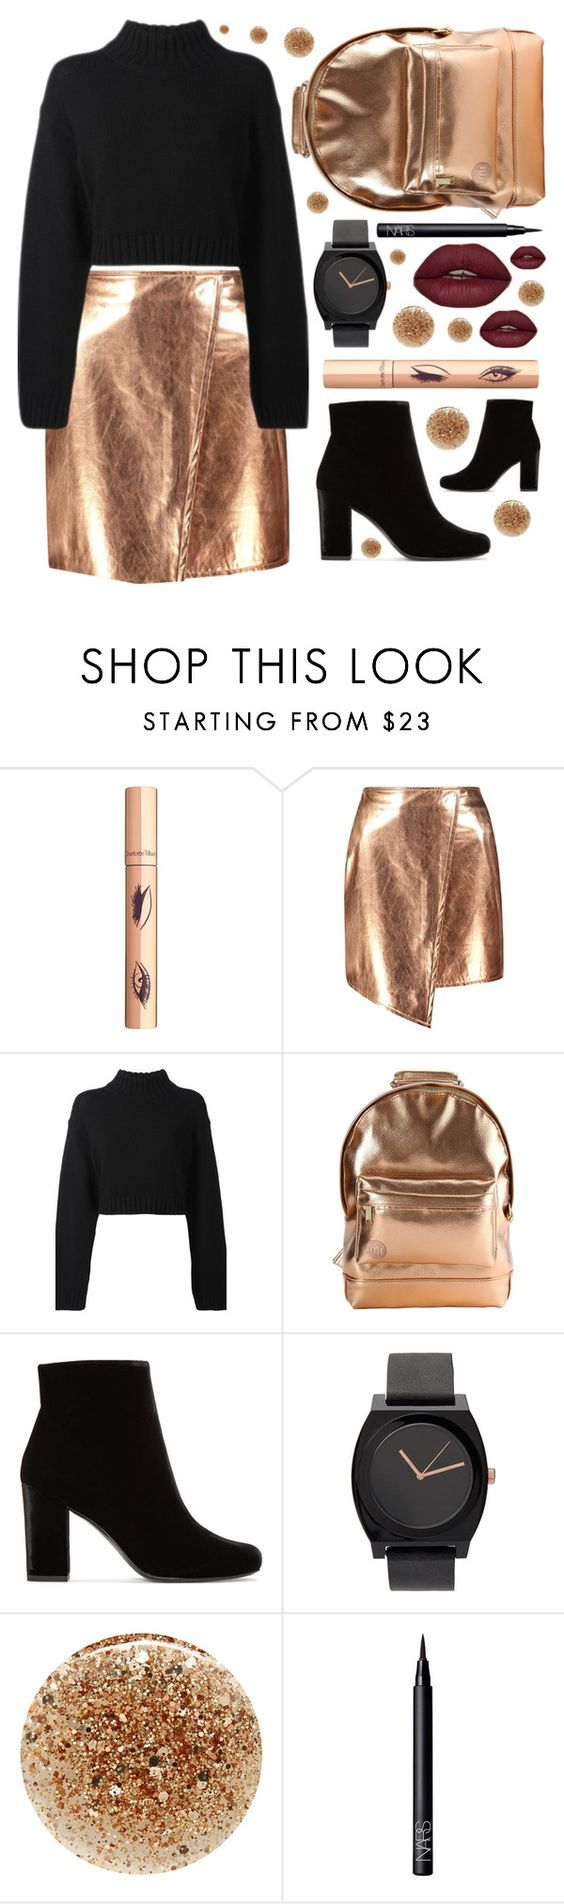 """⚫️black boots⚫️"" by sanela-enter ❤ liked on Polyvore featuring Boohoo, DKNY, Mi-Pac, Yves Saint Laurent, JINsoon and NARS Cosmetics"